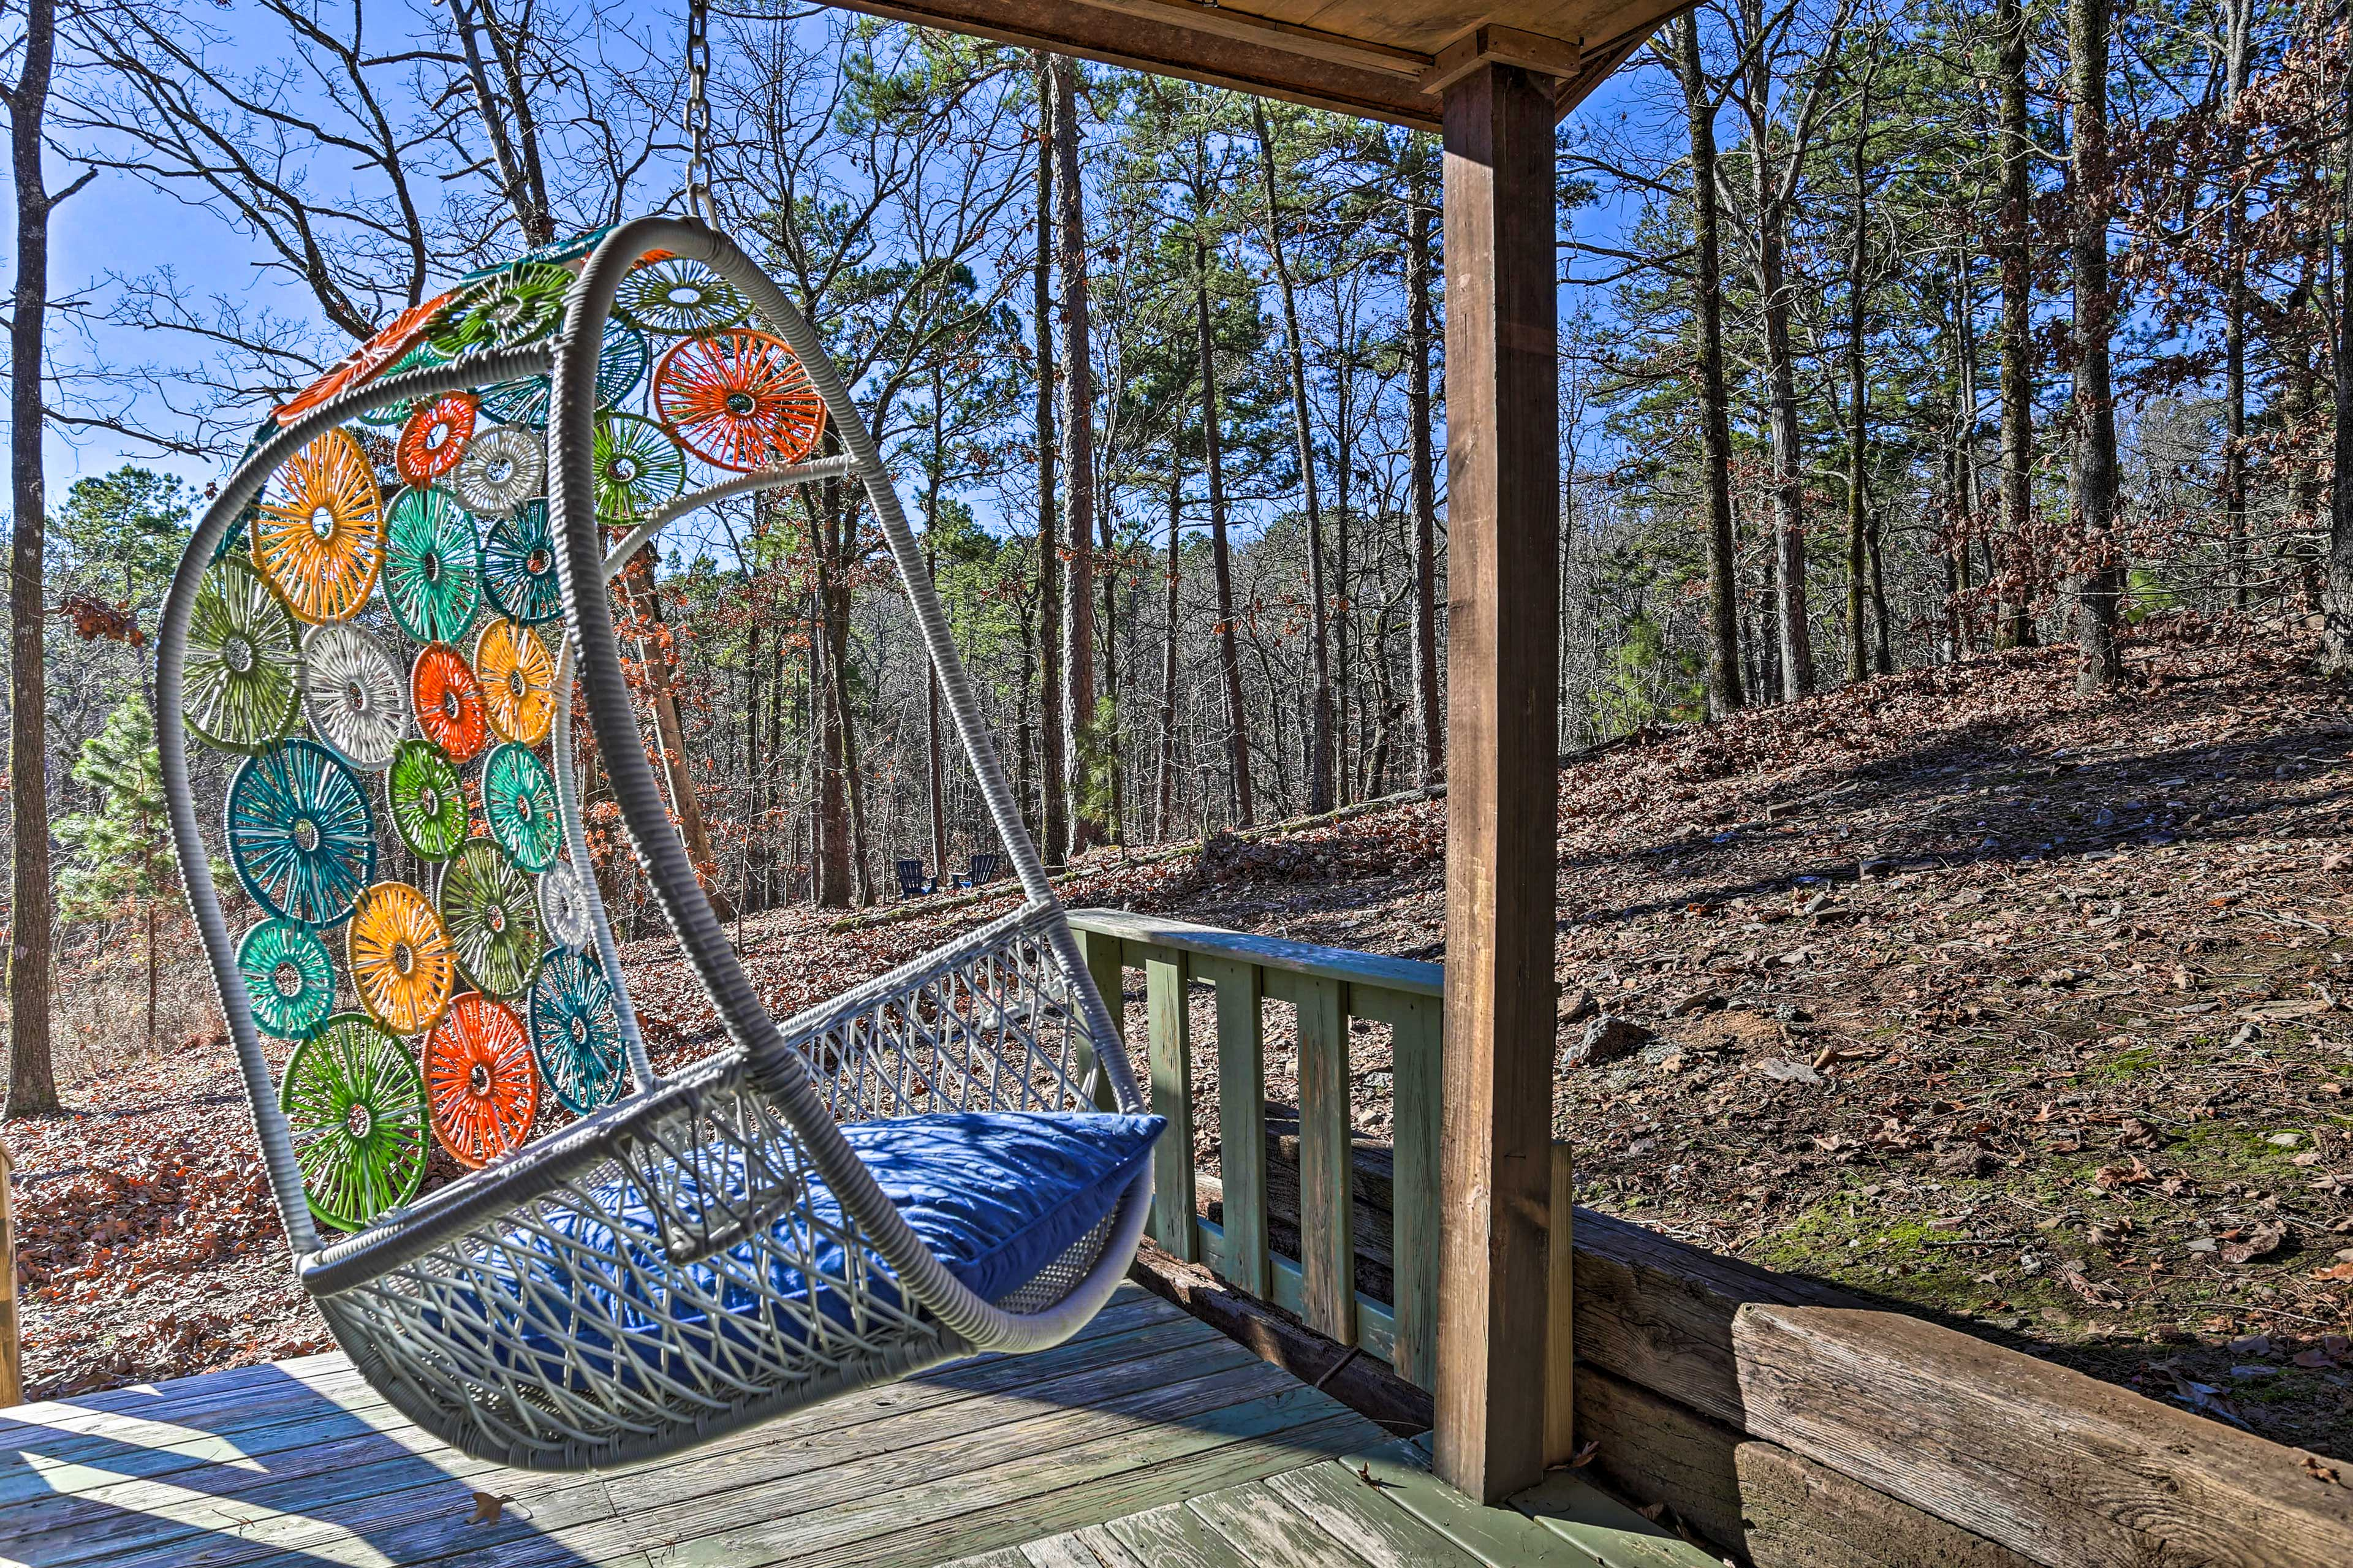 Sip your morning coffee in the swinging chair!